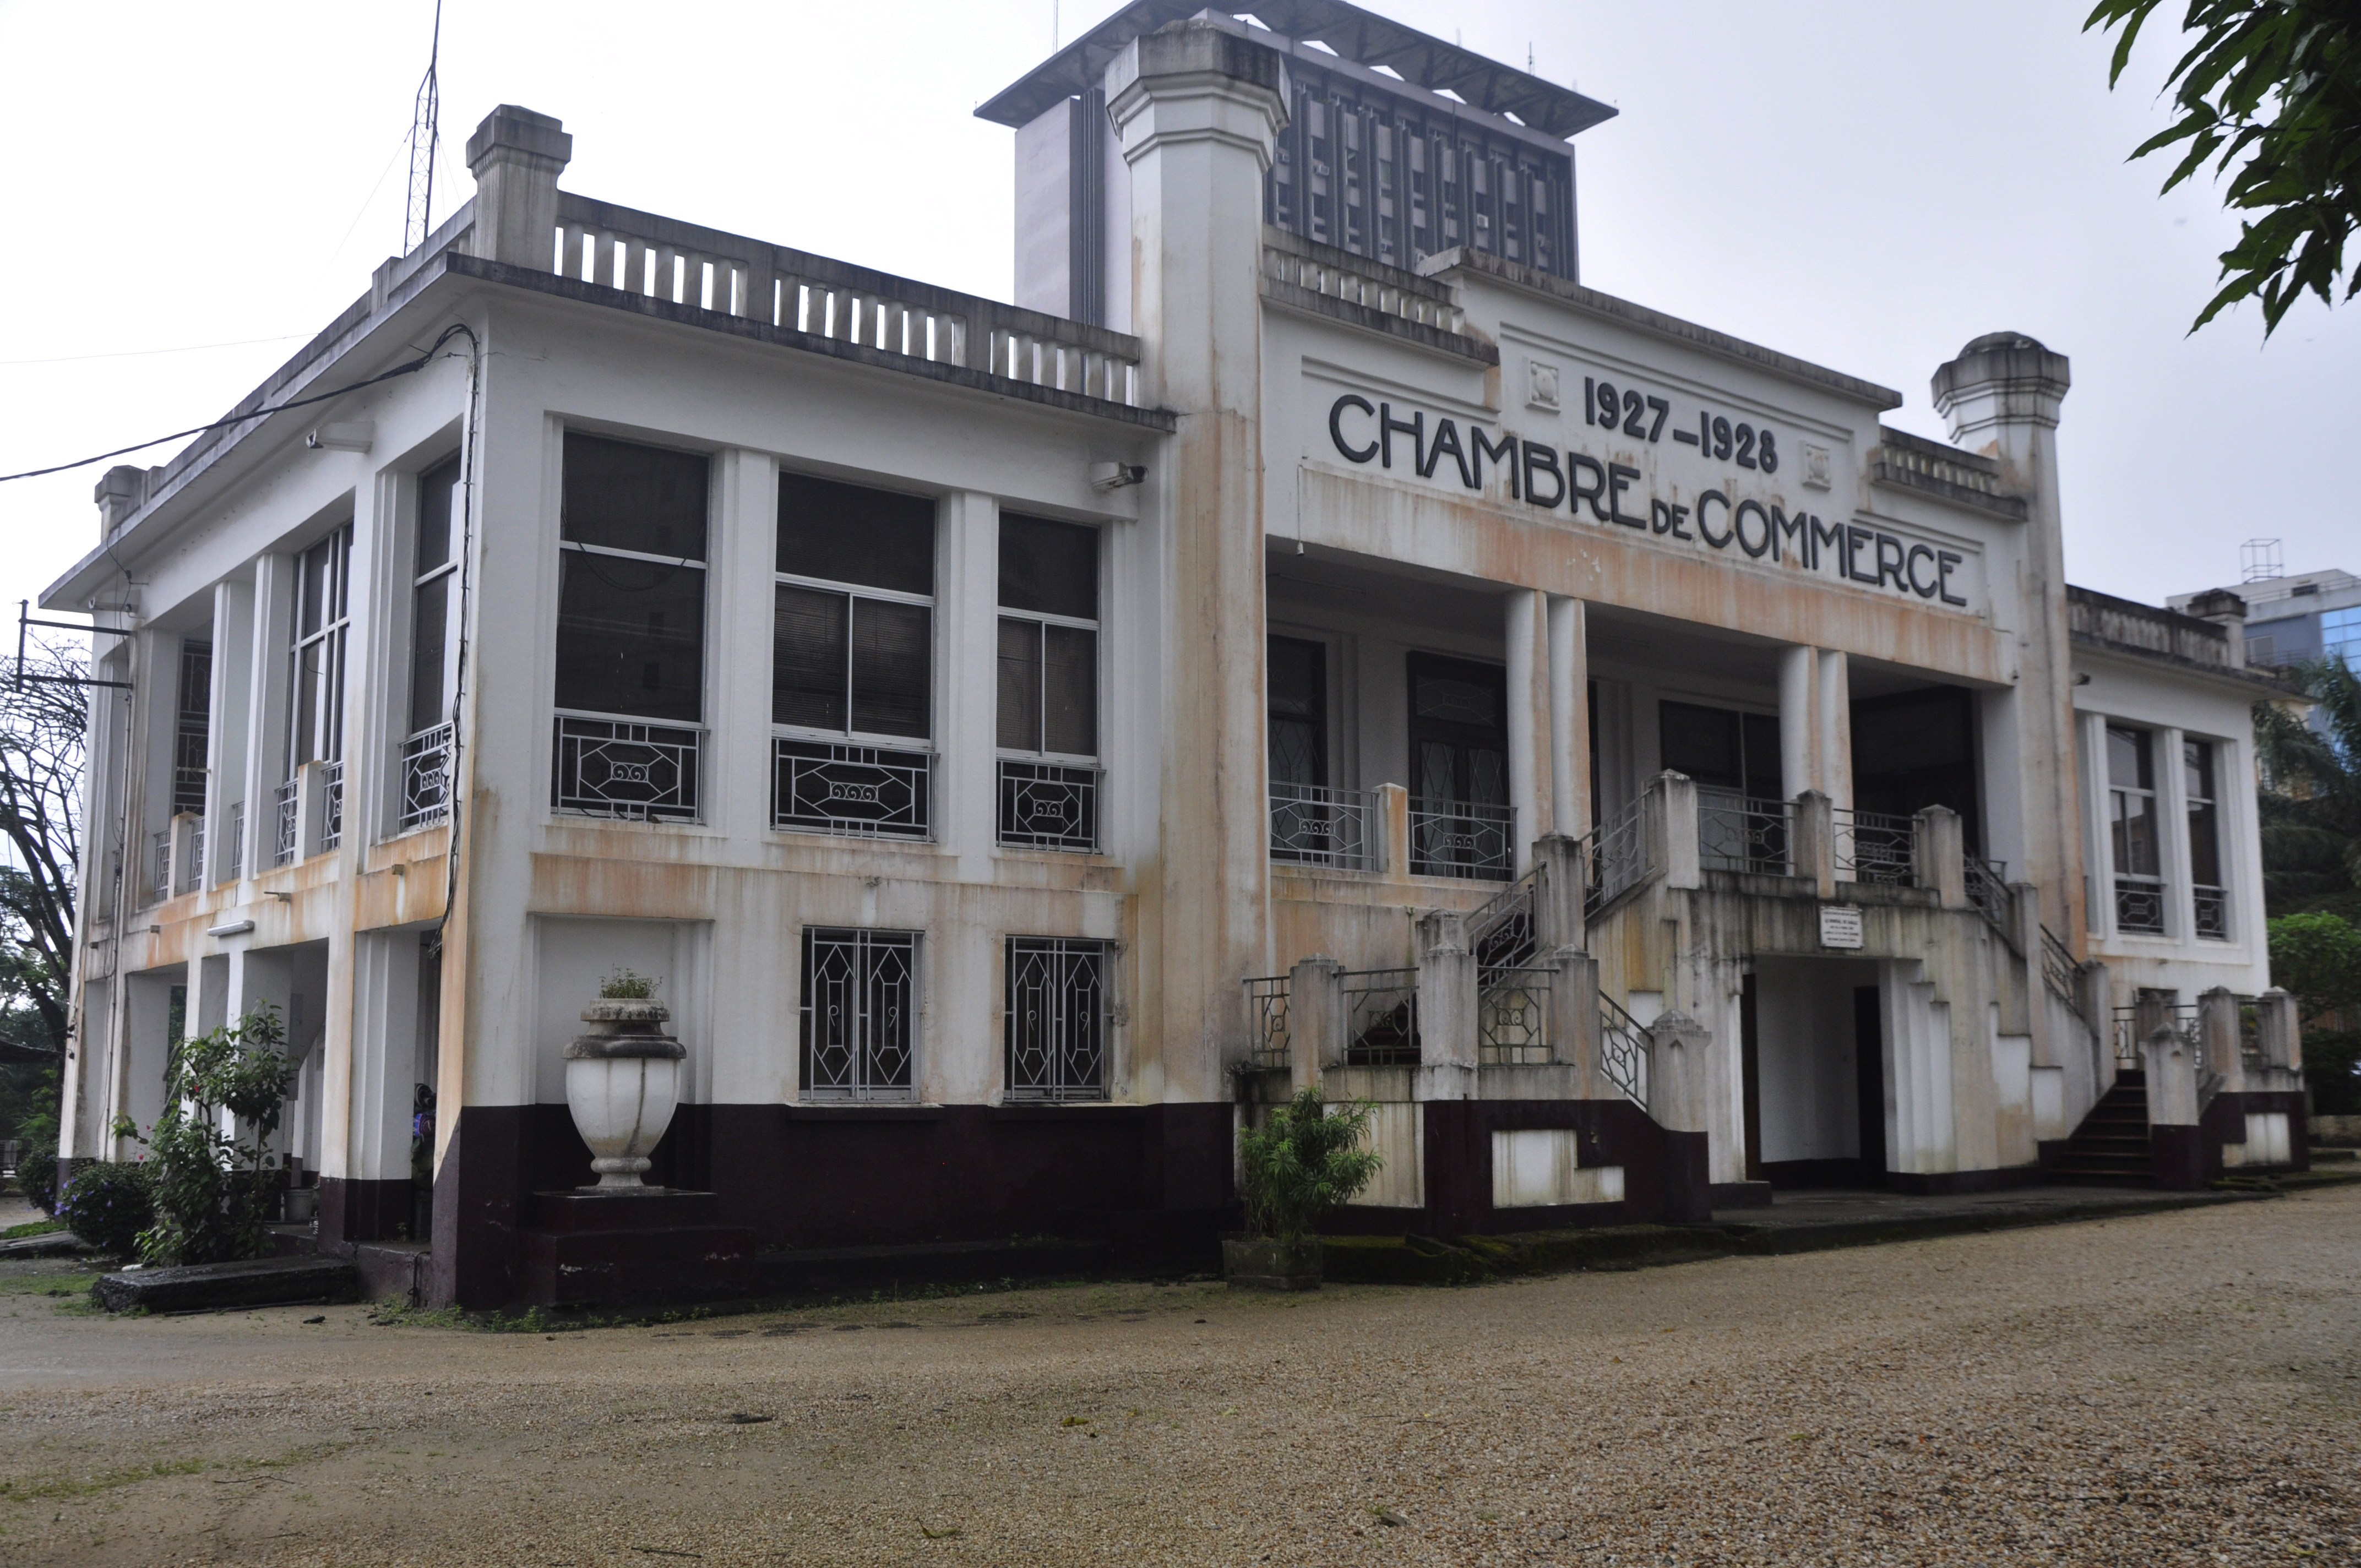 Buildings and structures in douala - Chambre de commerce frejus ...